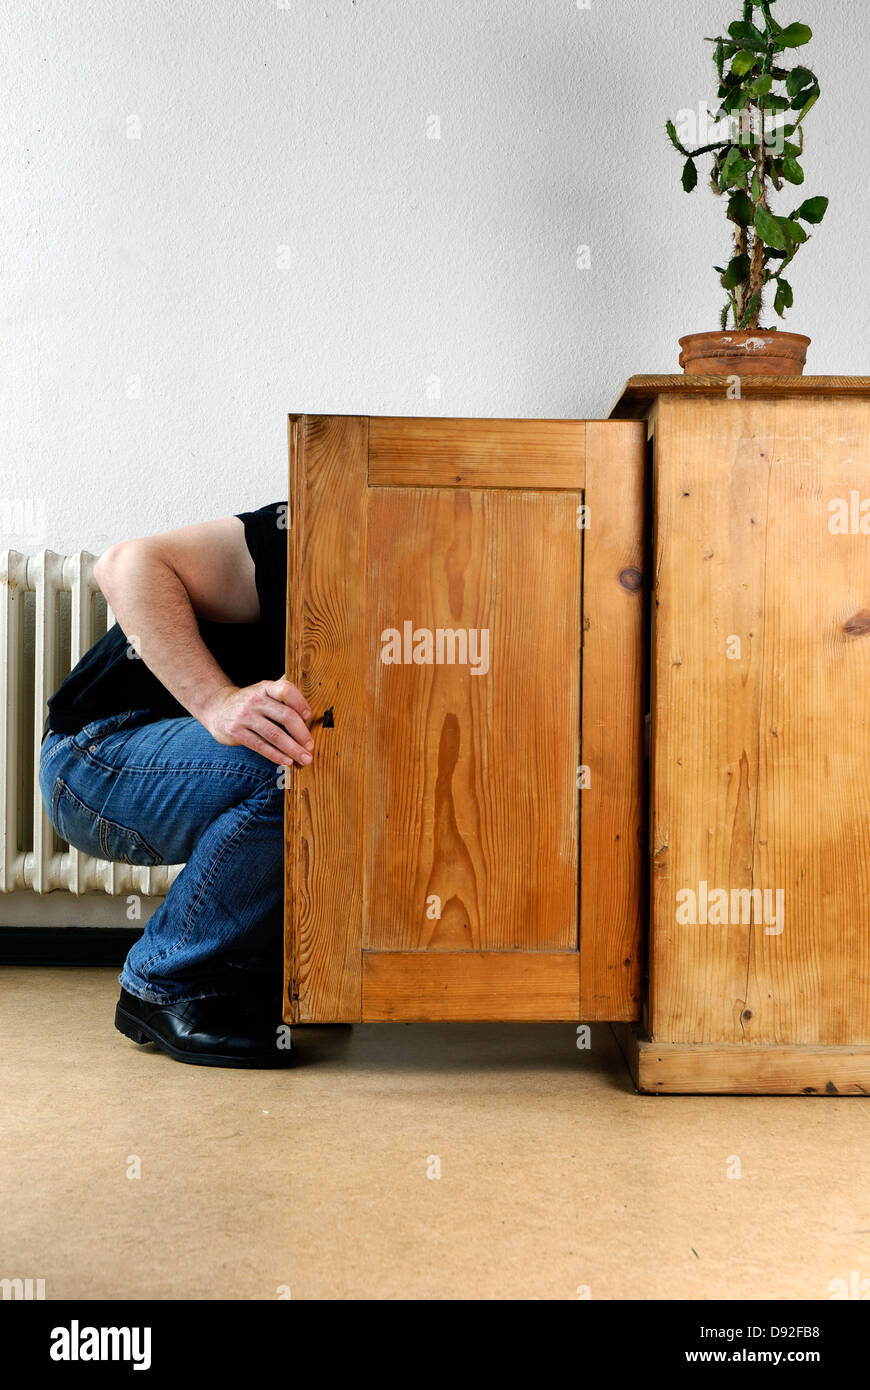 Man Is Looking Inside A Cabinet Stock Photo Alamy